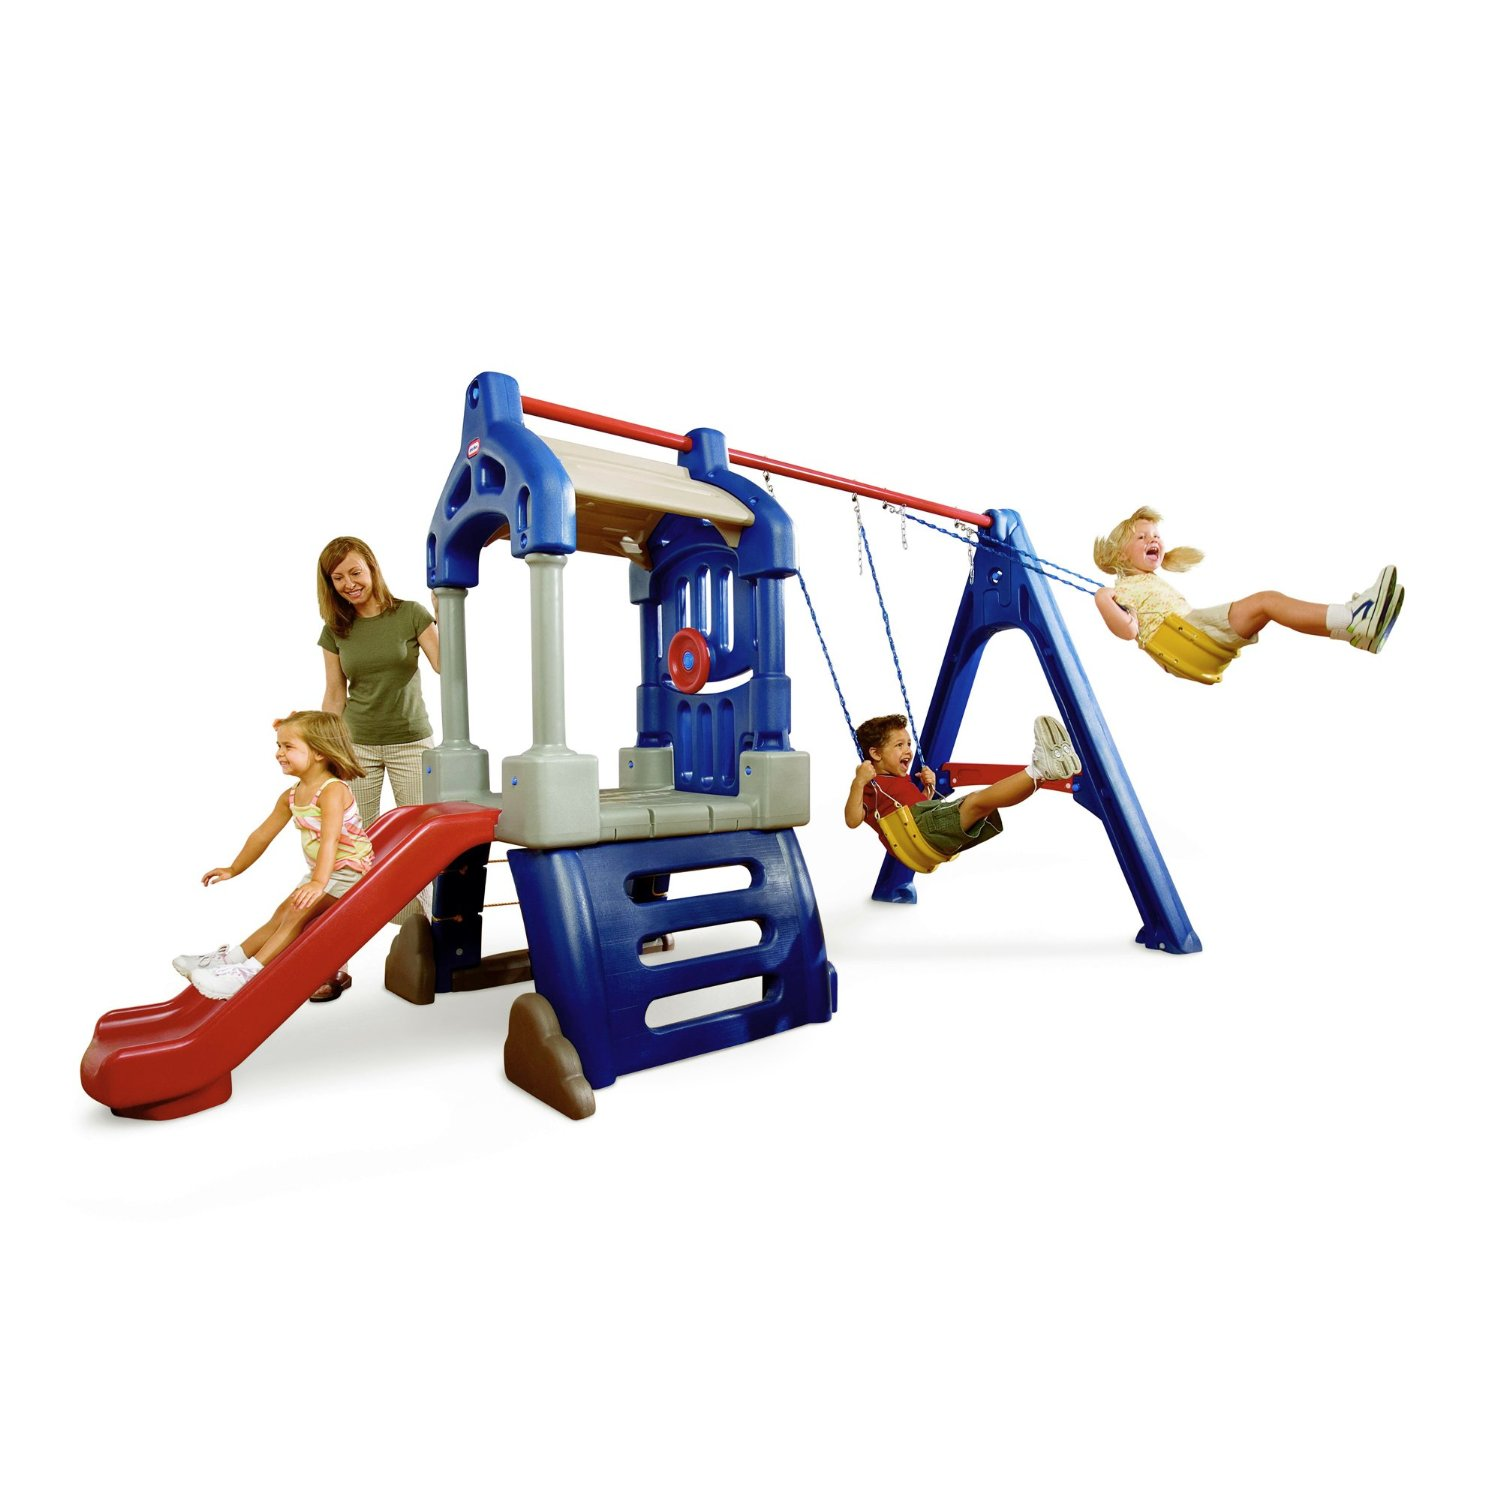 Don't Buy The Little Tikes Clubhouse Swing Set Before